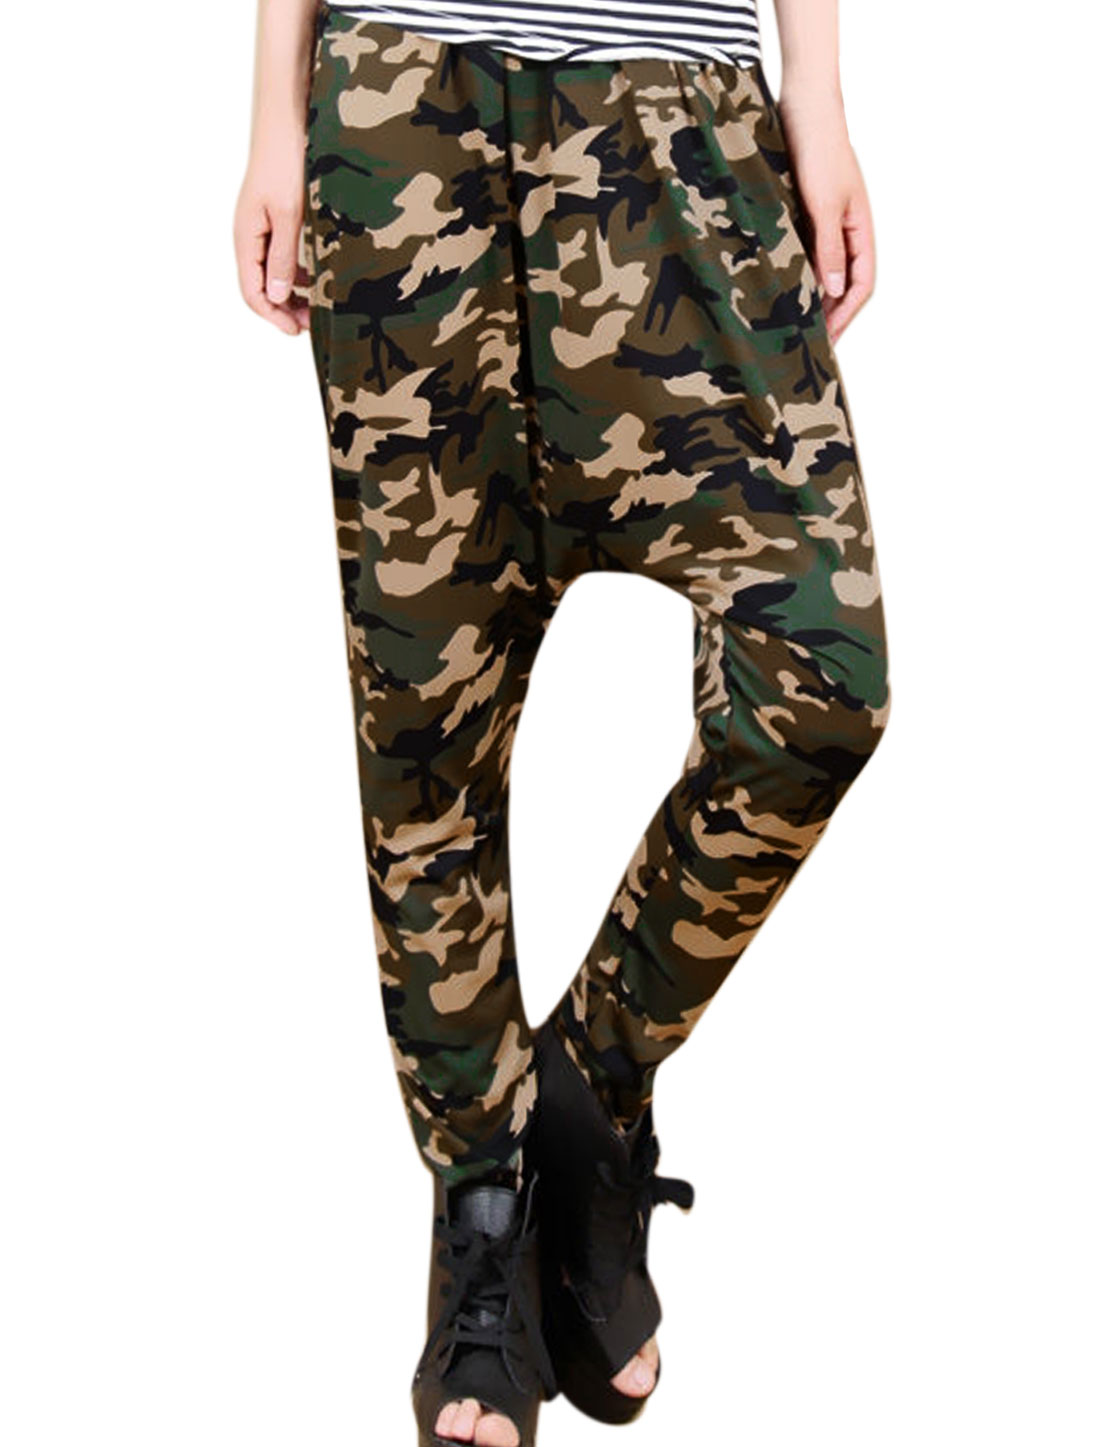 Women Two Pockets Camouflage Pattern Stylish Harem Pants Beige Black XS